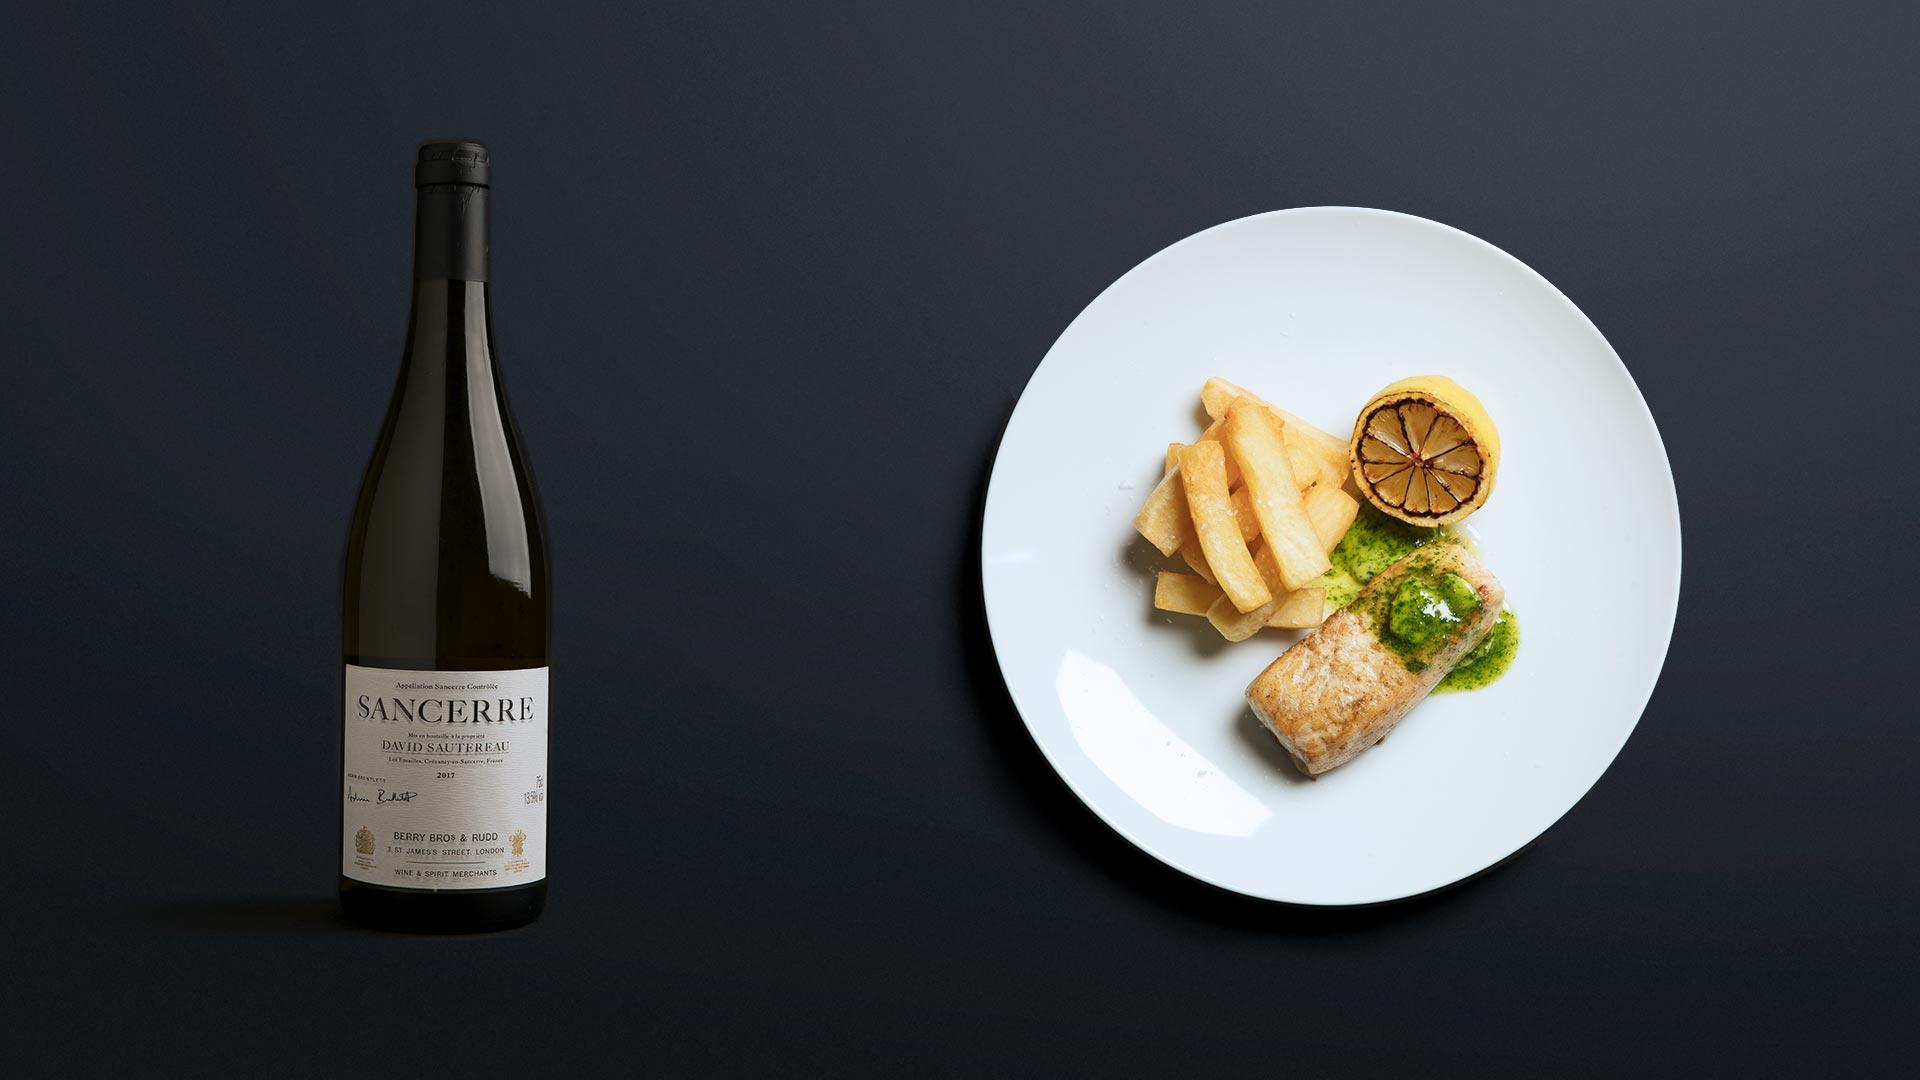 Berry Bros. & Rudd Sancerre 2017 with 'fish and chips'